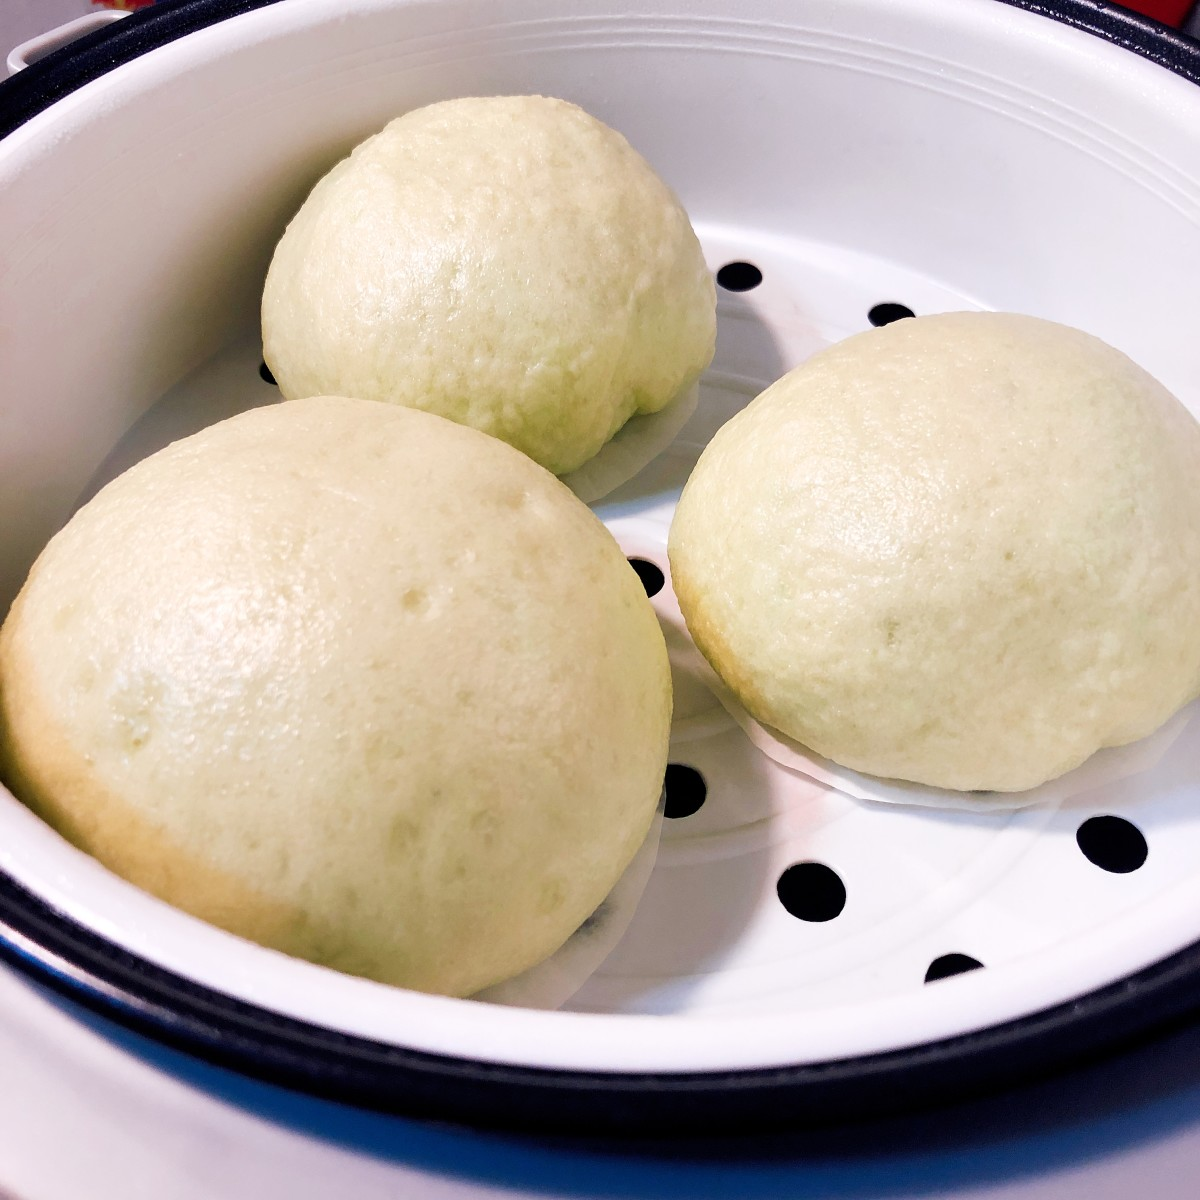 Steamed buns are ready to eat!